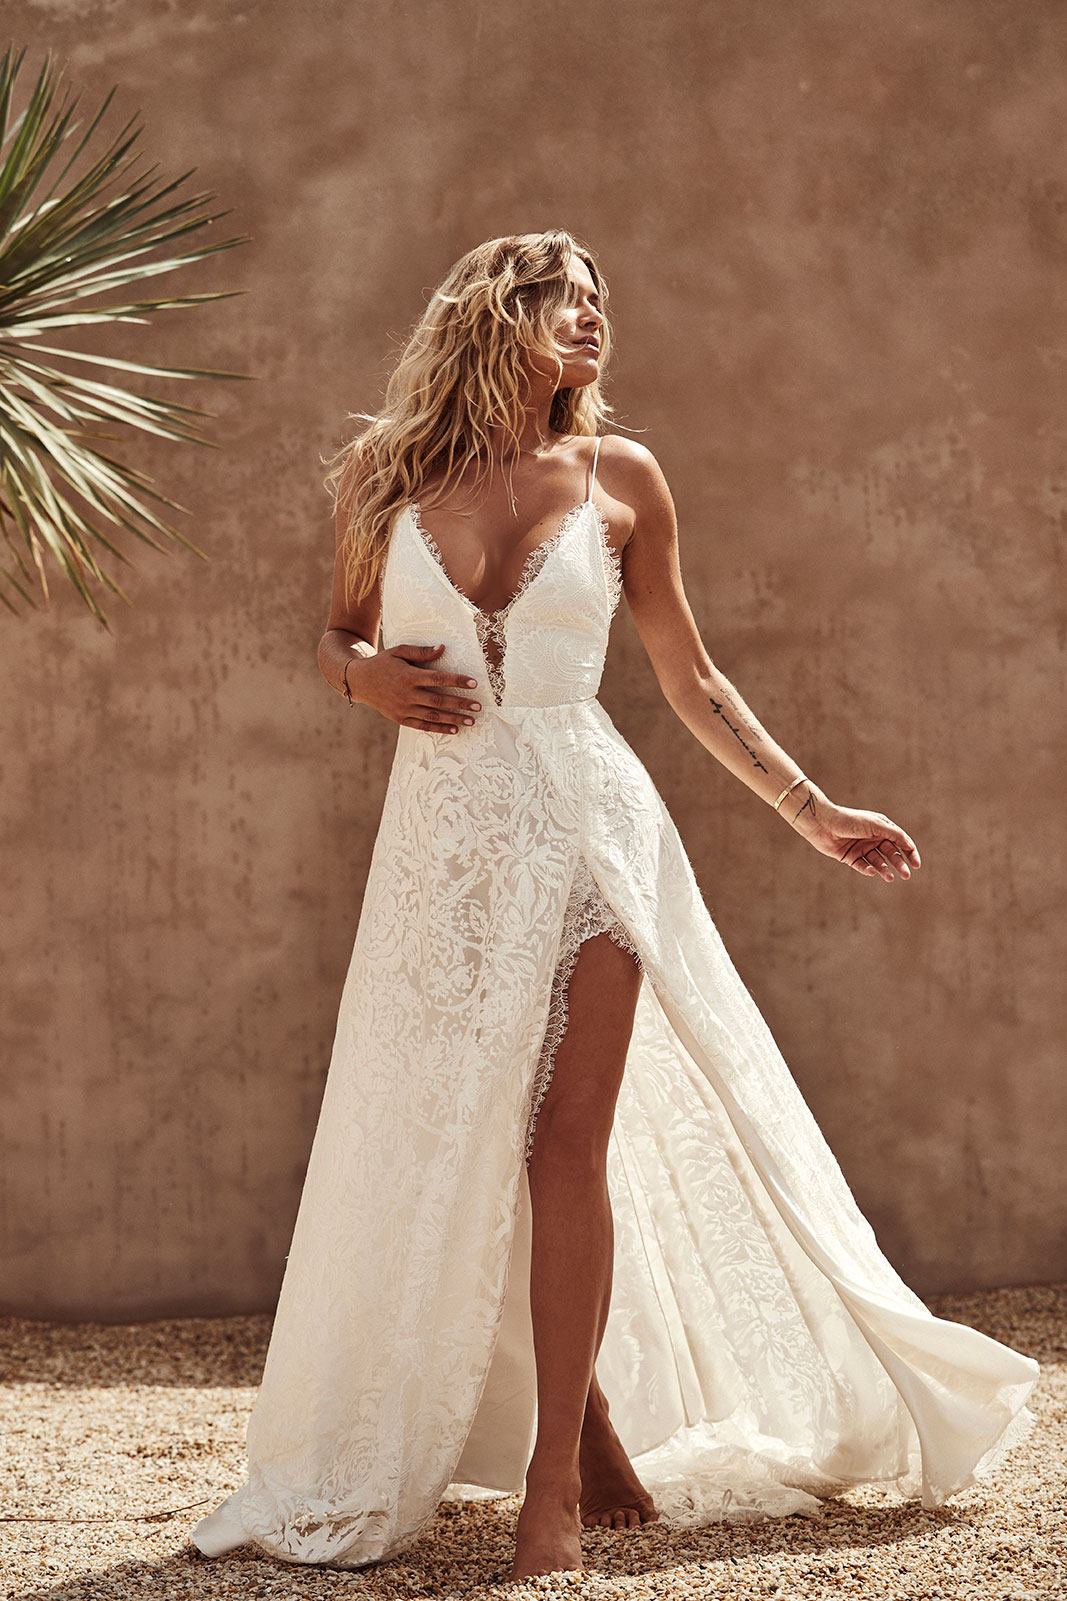 Darling-Gown-Grace-Loves-Lace-La-Bamba-Collection-3-Low-Res.jpg